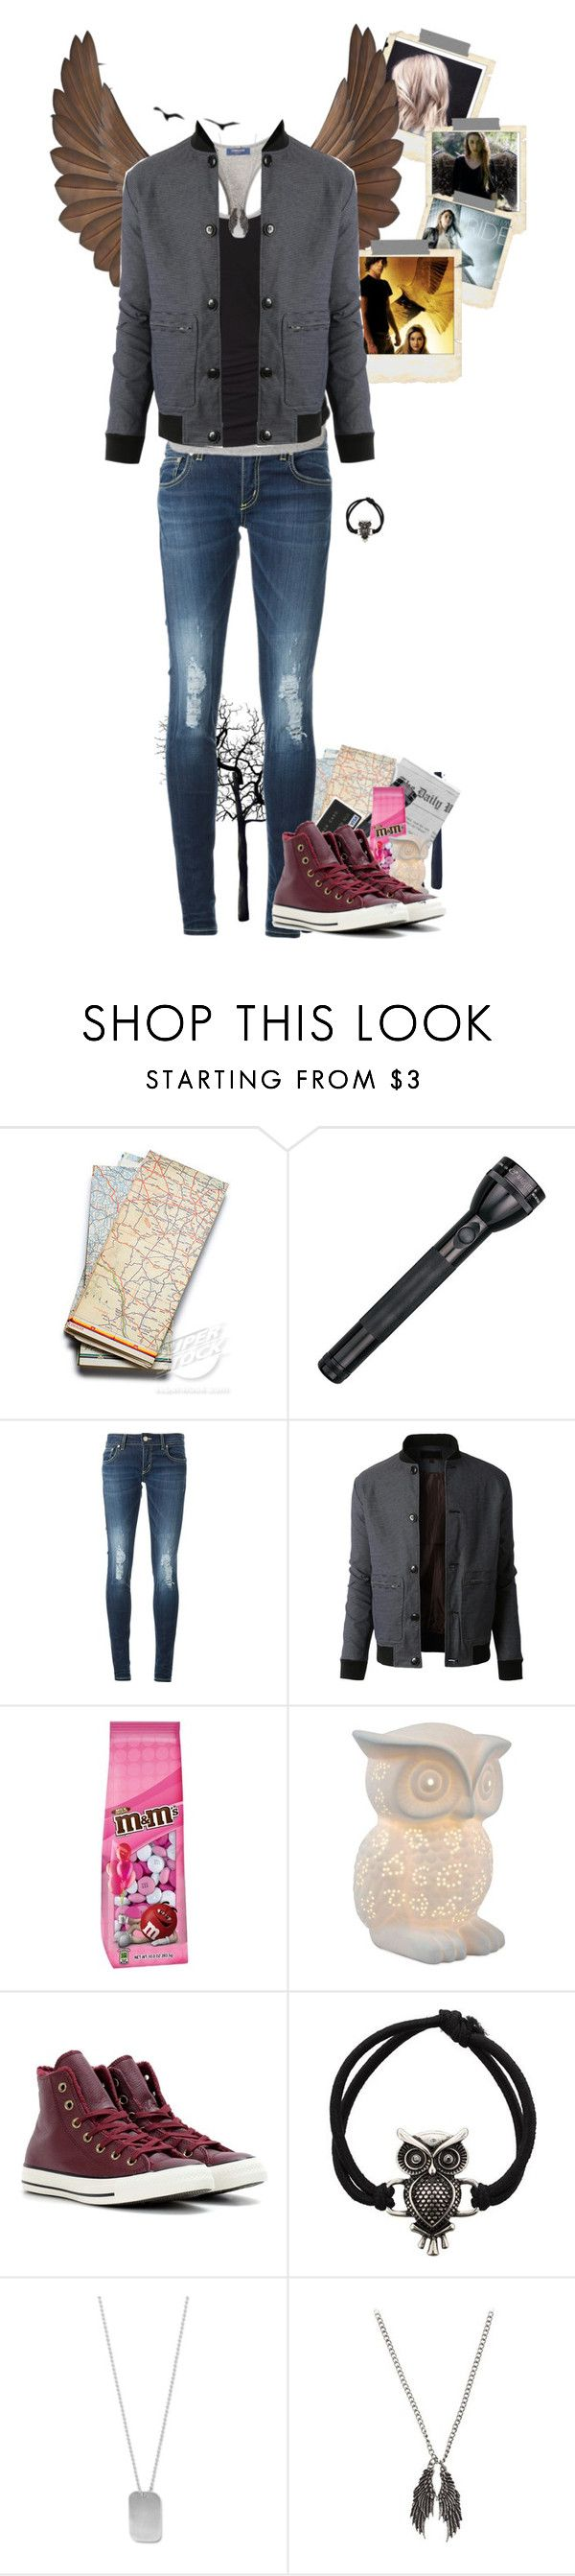 """""""Maximum 'Max' Ride"""" by little-miss-otp ❤ liked on Polyvore featuring Polaroid, Dondup, LE3NO, All the Rages, Converse, Fad Treasures, BillyTheTree, reading, books and maximumride"""